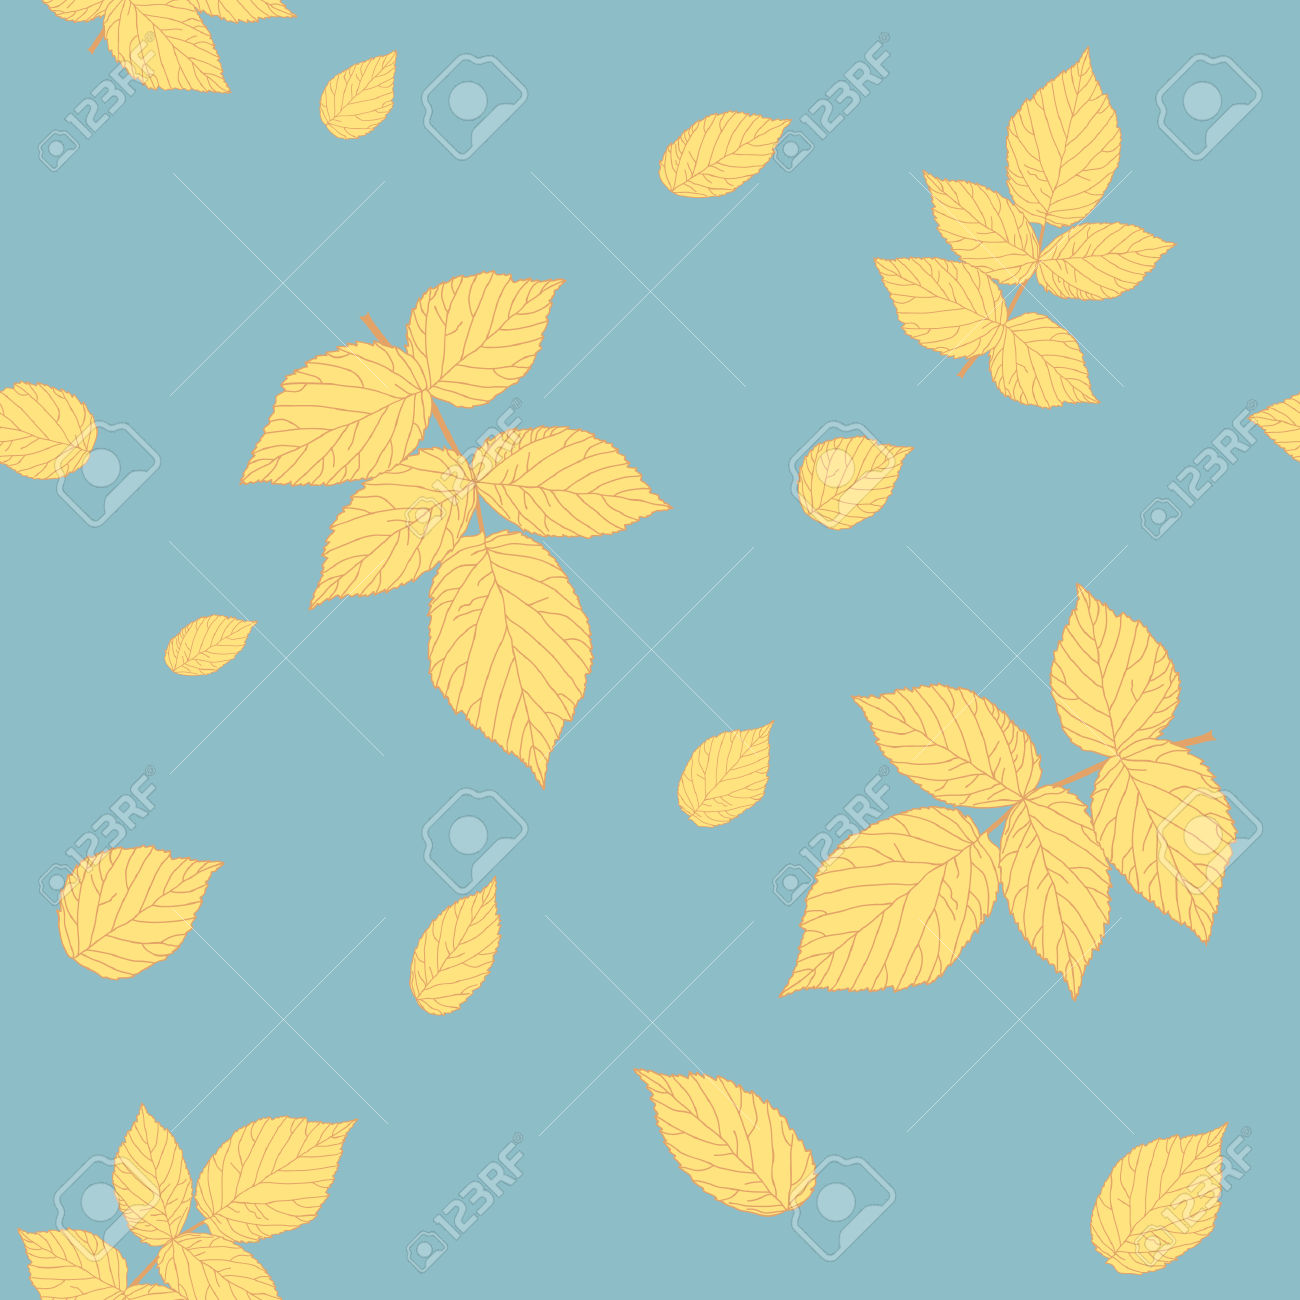 Pastel leaves background clipart graphic royalty free Seamless Pattern With Raspberry Leaves Clear Pastel Colors ... graphic royalty free